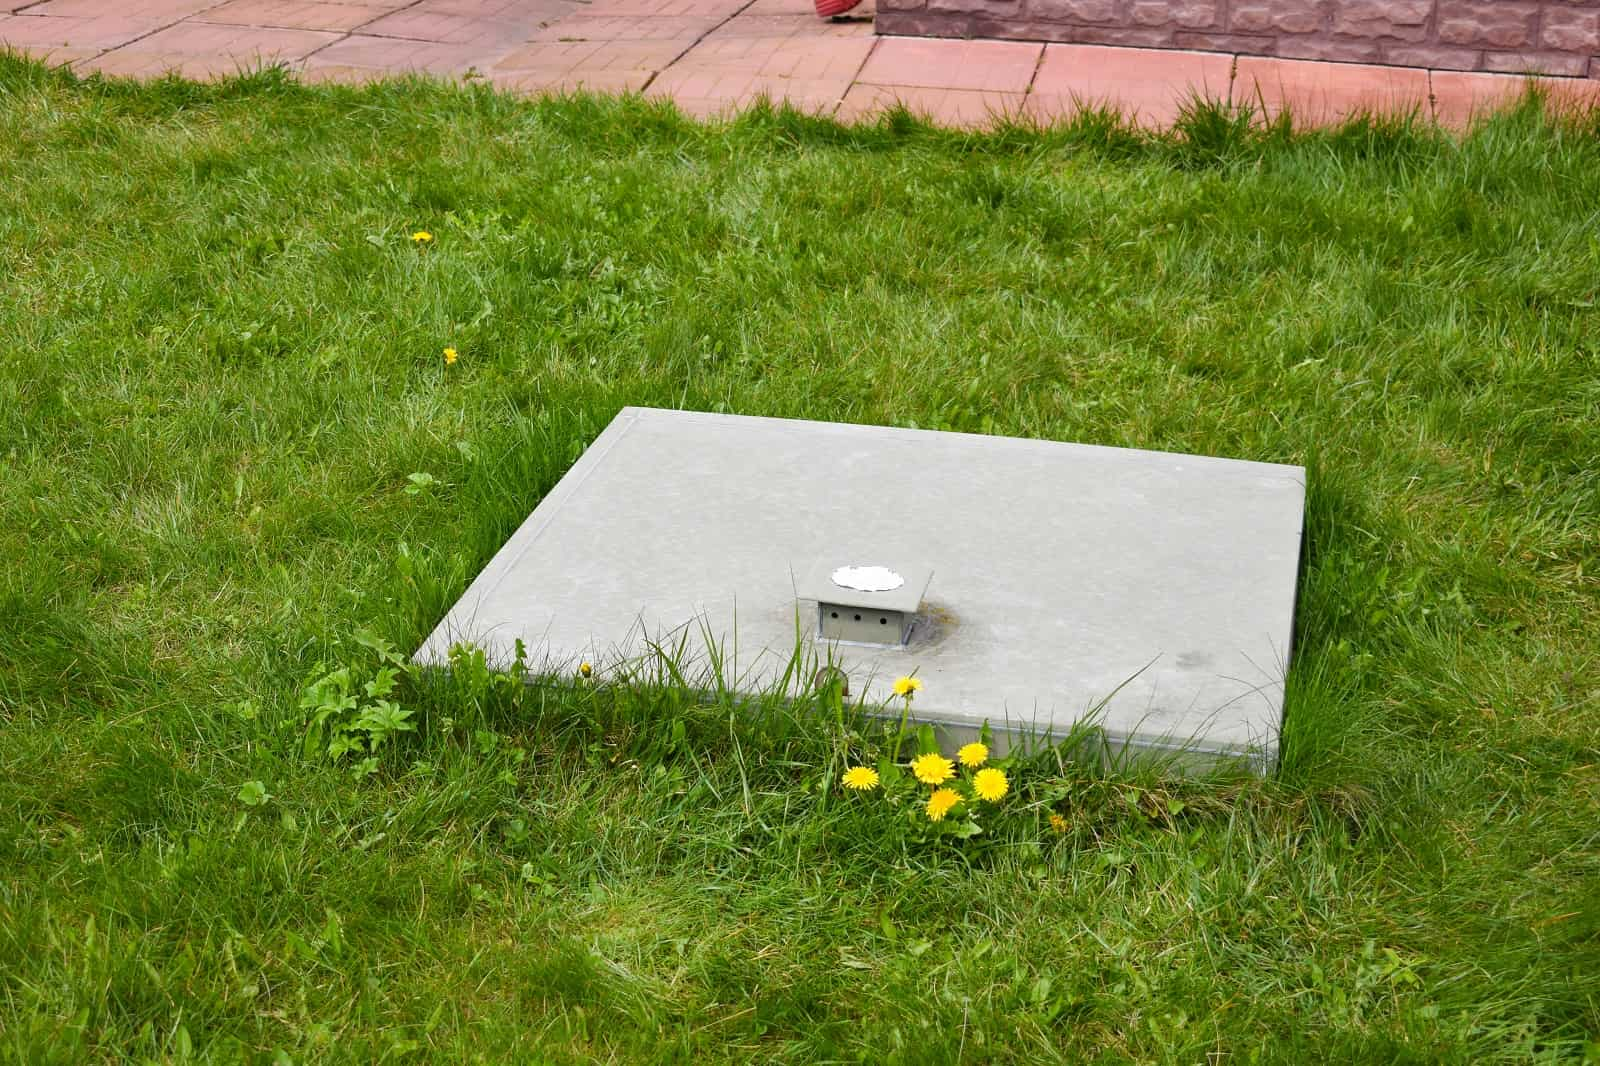 How To Find The Best Plumber For Septic Tank Repair And Installation. Septic tank lid in the grass